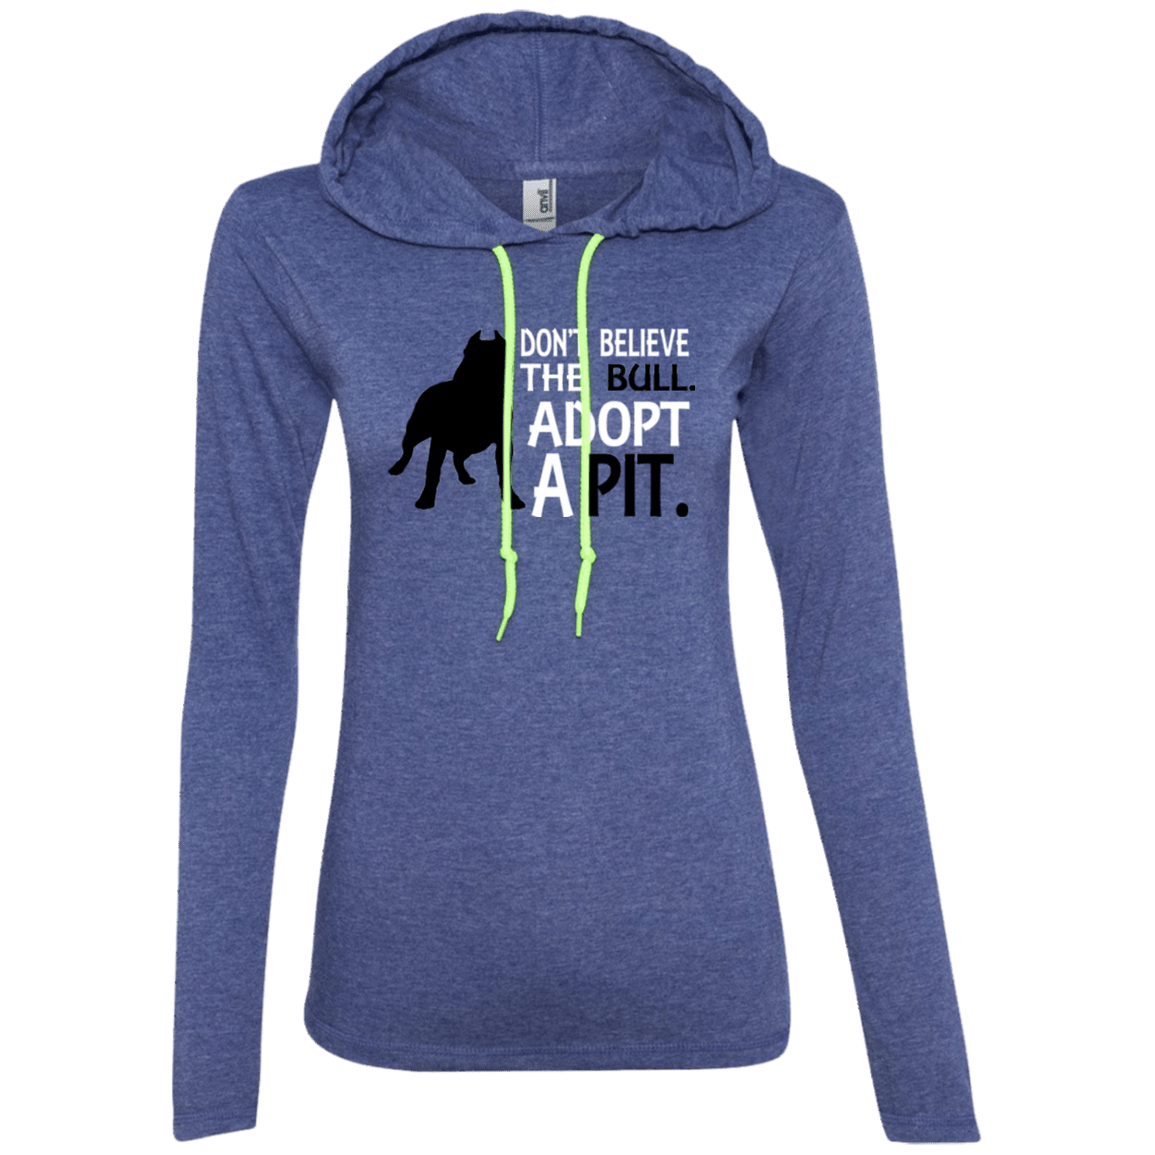 Don't Believe the Bull - 887L Anvil Ladies' LS T-Shirt Hoodie Heather Blue/Neon Yellow Small - Little Pit Shop